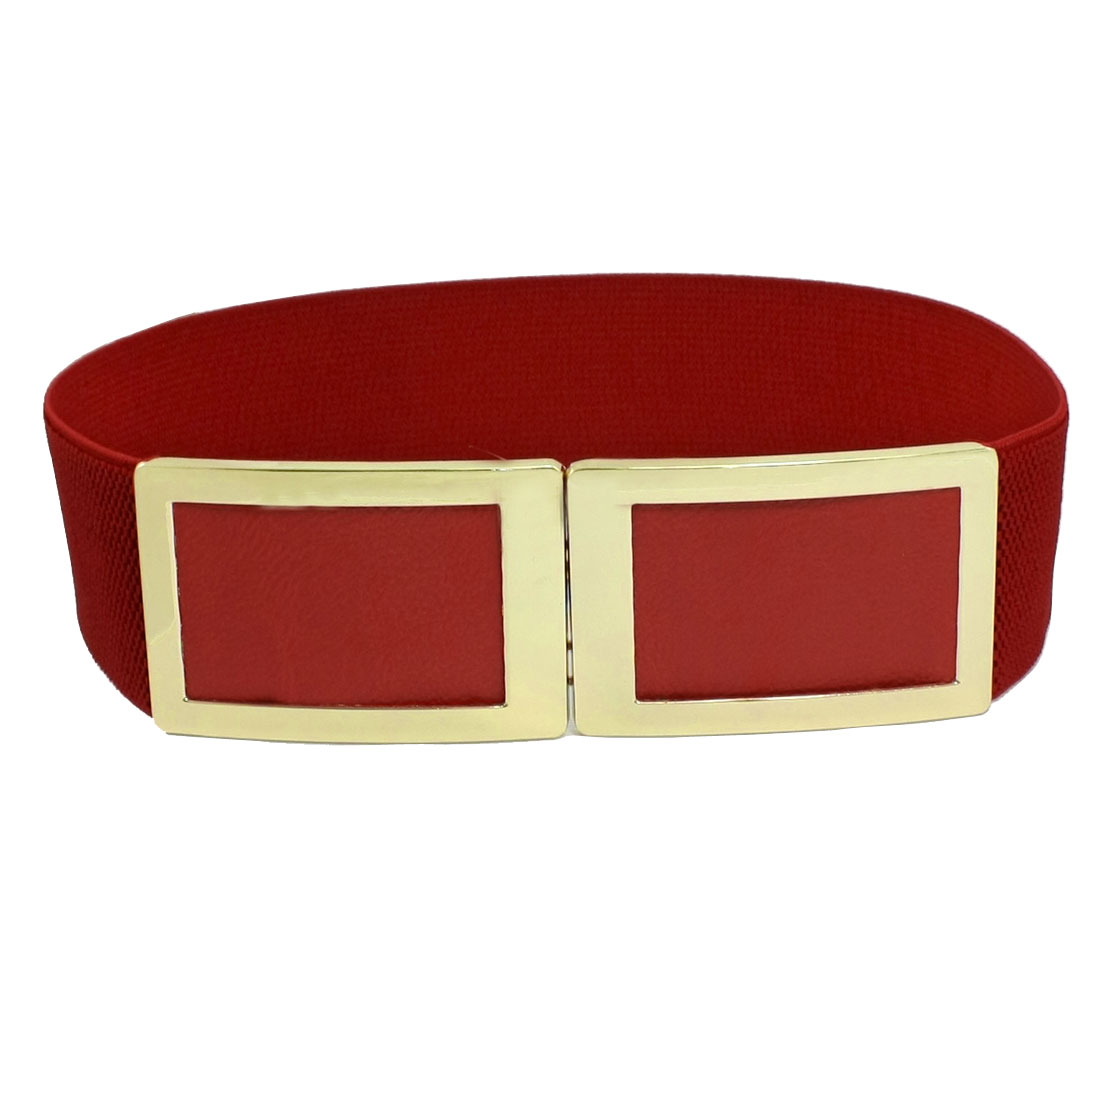 Lady Metal Square Interlocking Buckle Cinch Band Waist Belt Red